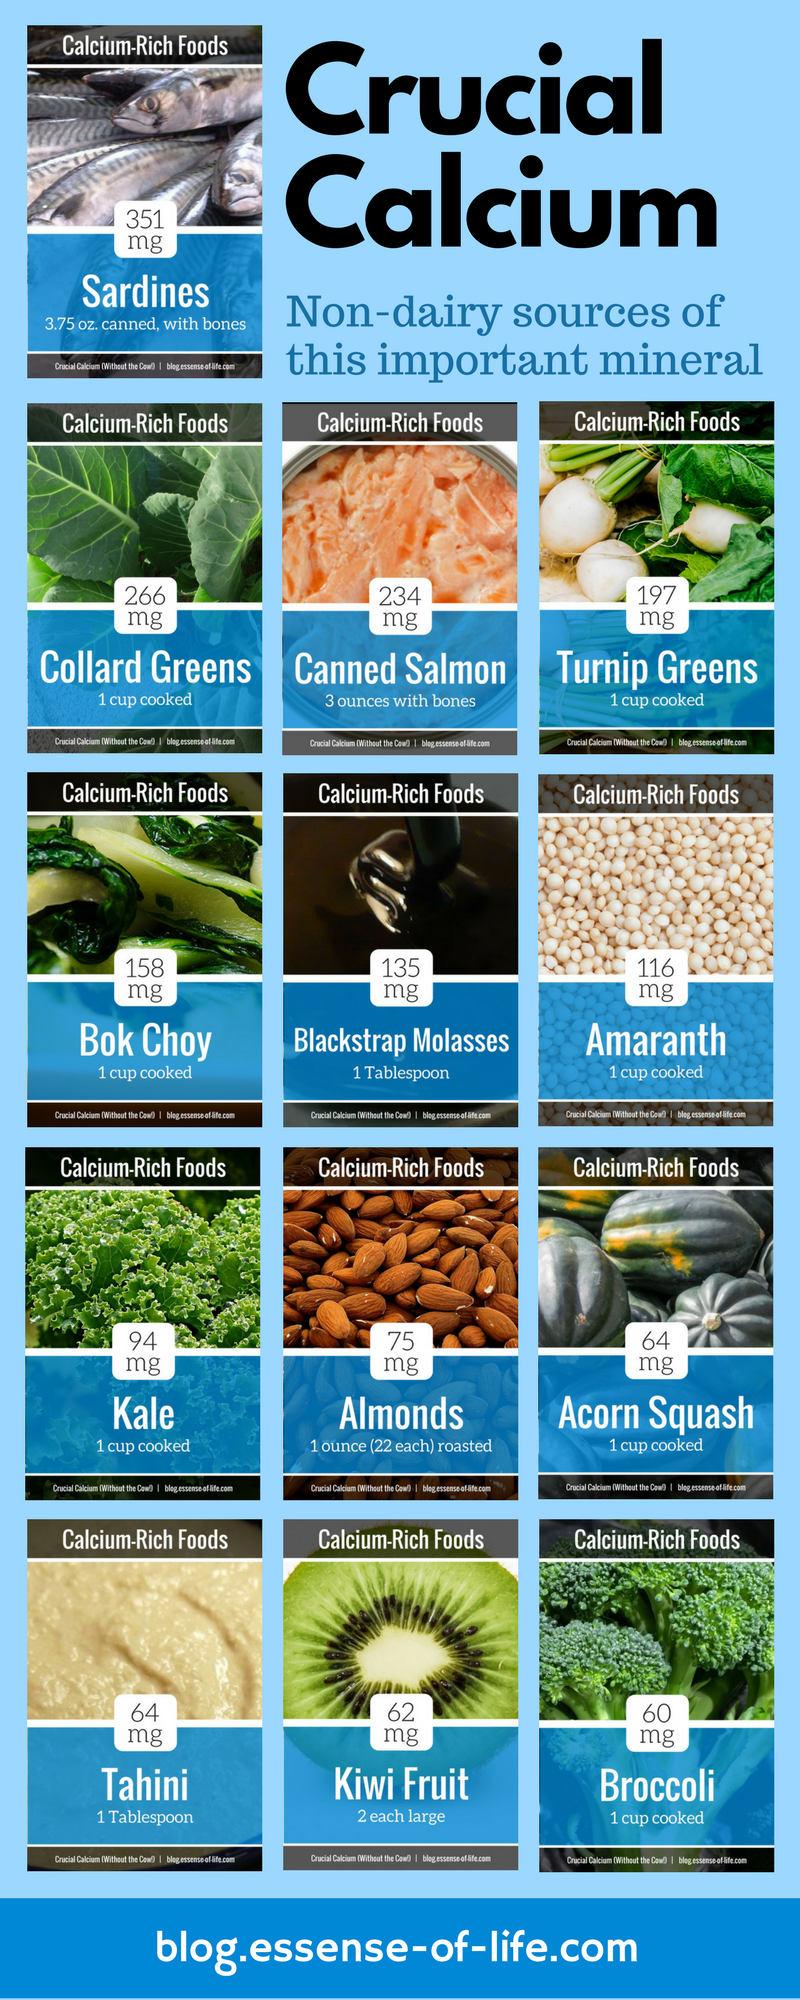 Crucial Calcium Without The Cow 13 Dairy Free Ways To Get More Calcium Your Diet The Essential Health Blog Foods With Calcium Calcium Rich Foods Best Diets